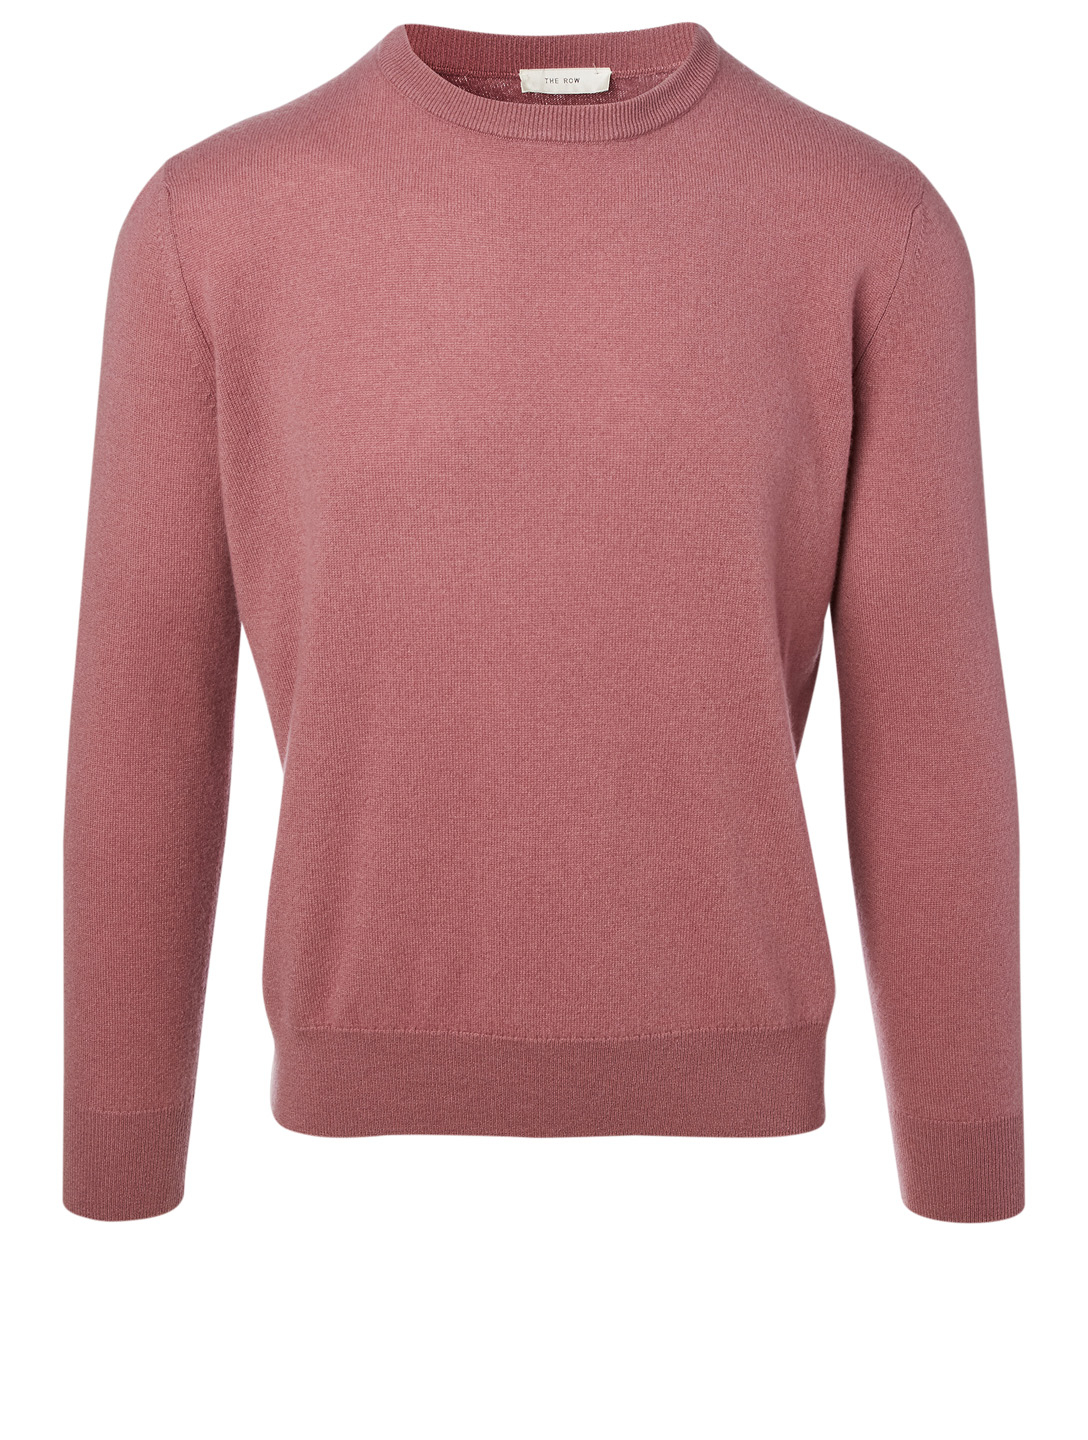 THE ROW Benji Cashmere Sweater Men's Pink